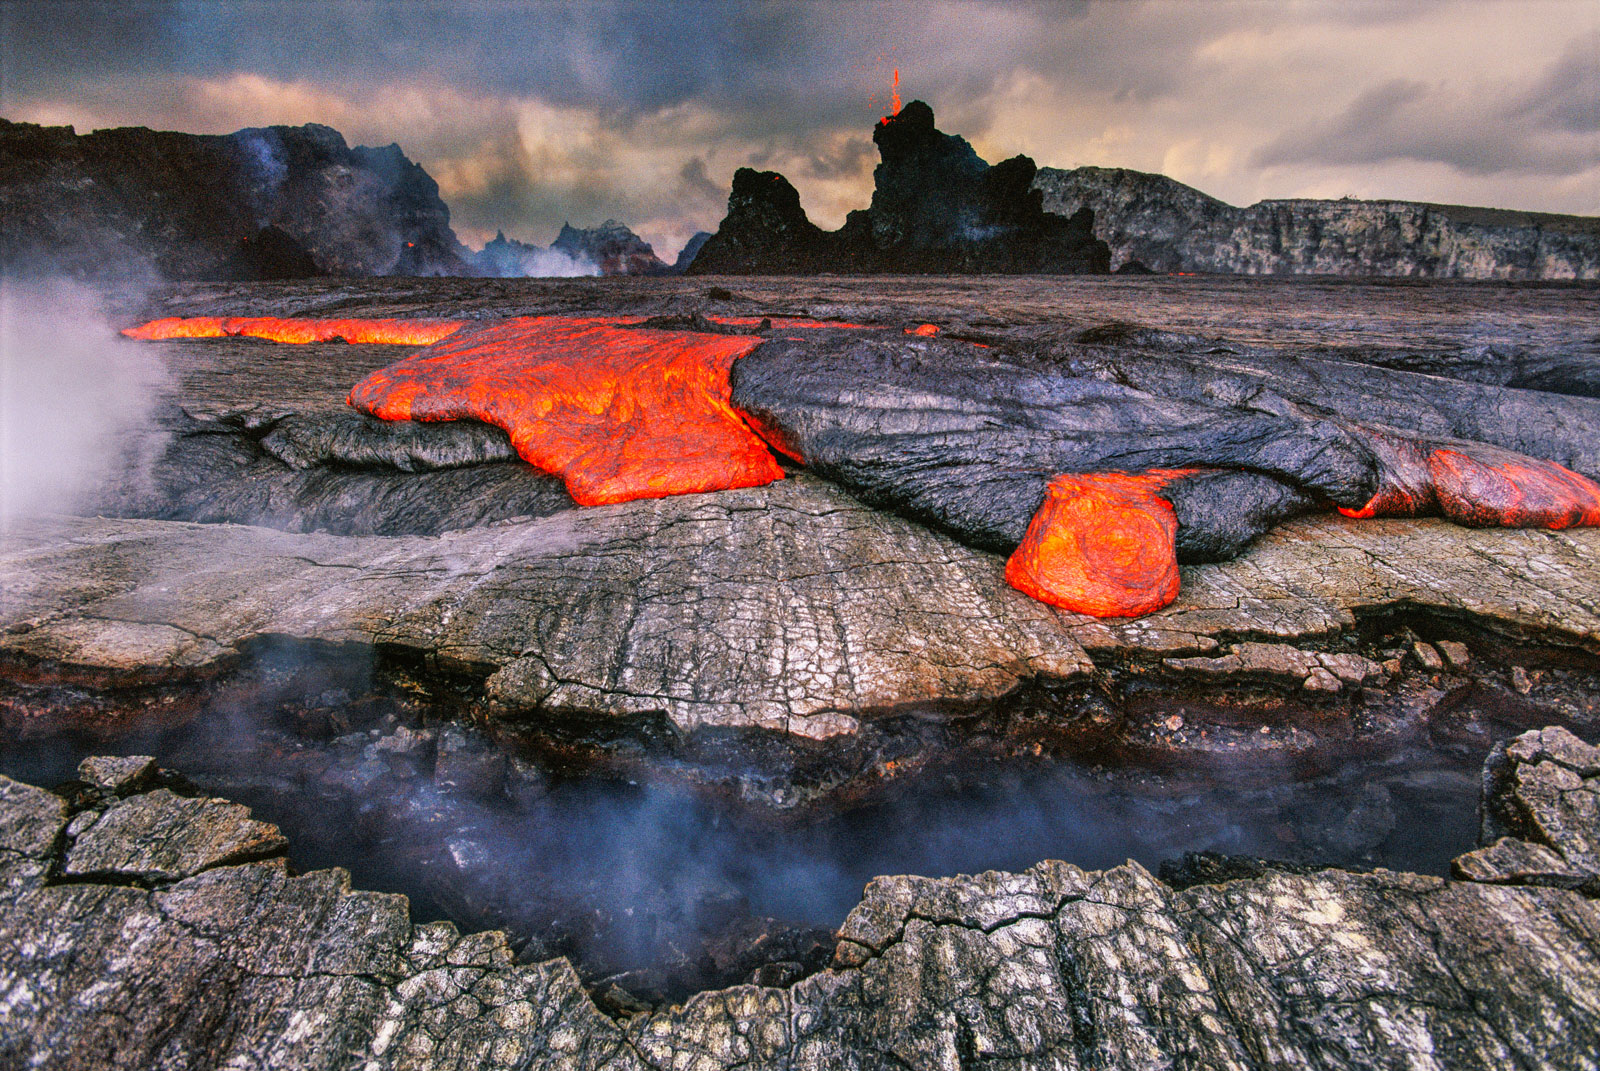 Lava overflowing caldera of Pu'u 'O'o, Hawaii Volcanoes National Park, Hawaii, USA